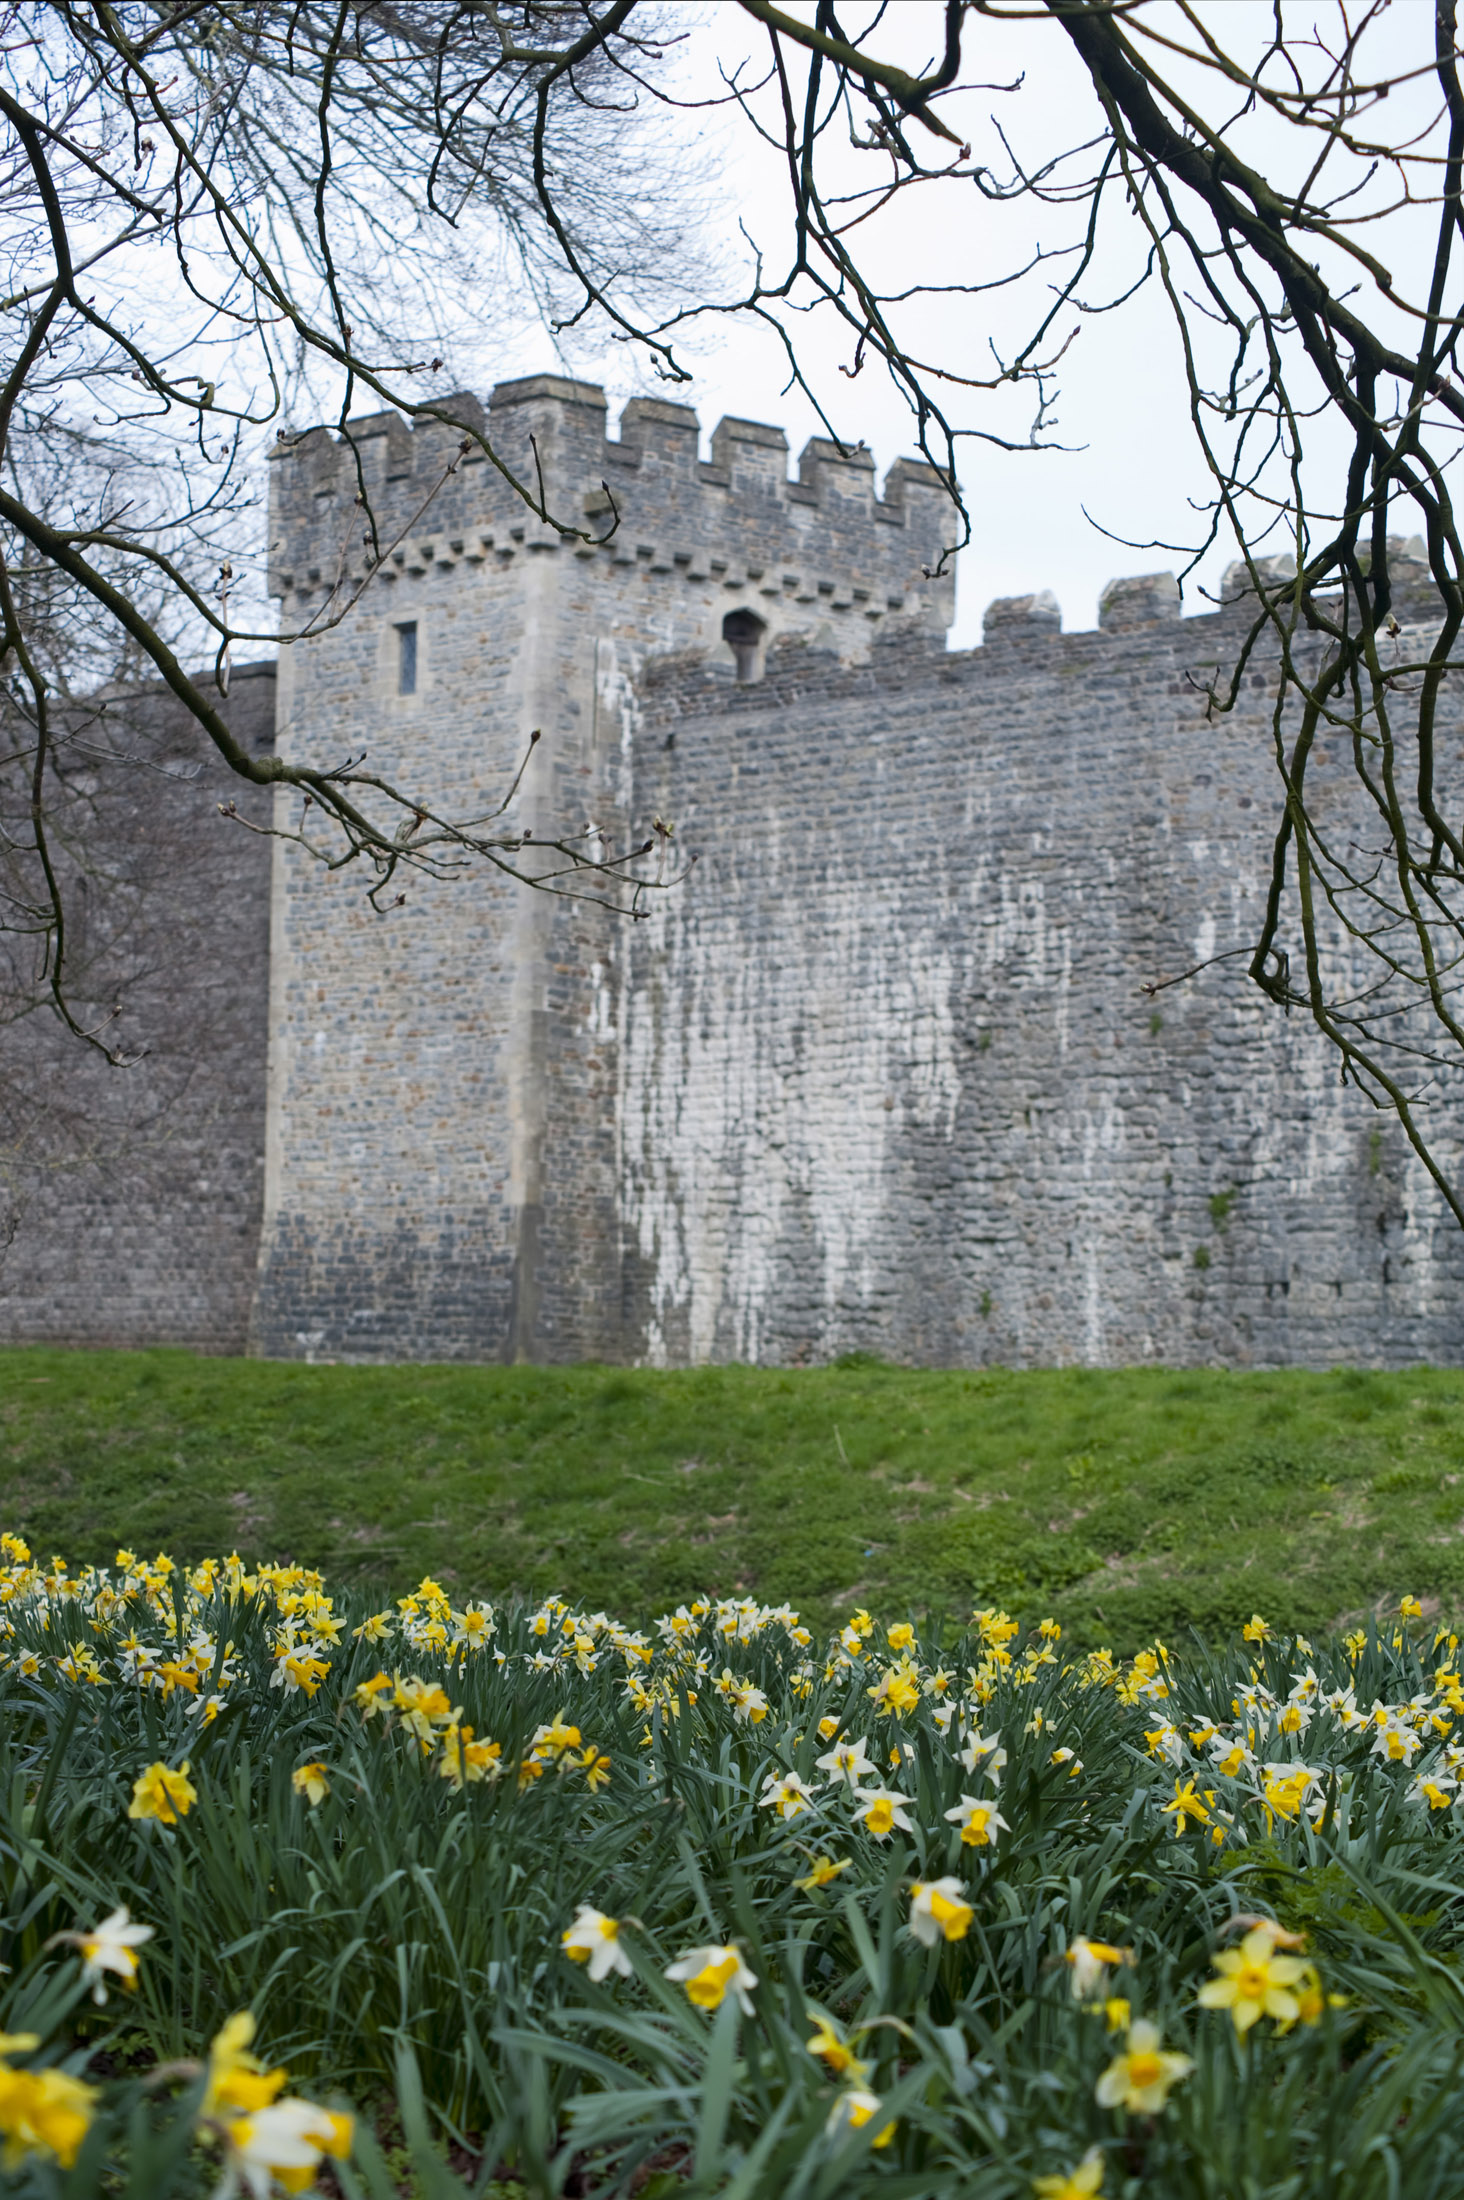 cardiff castle walls, lined with daffodils, the national flower of wales